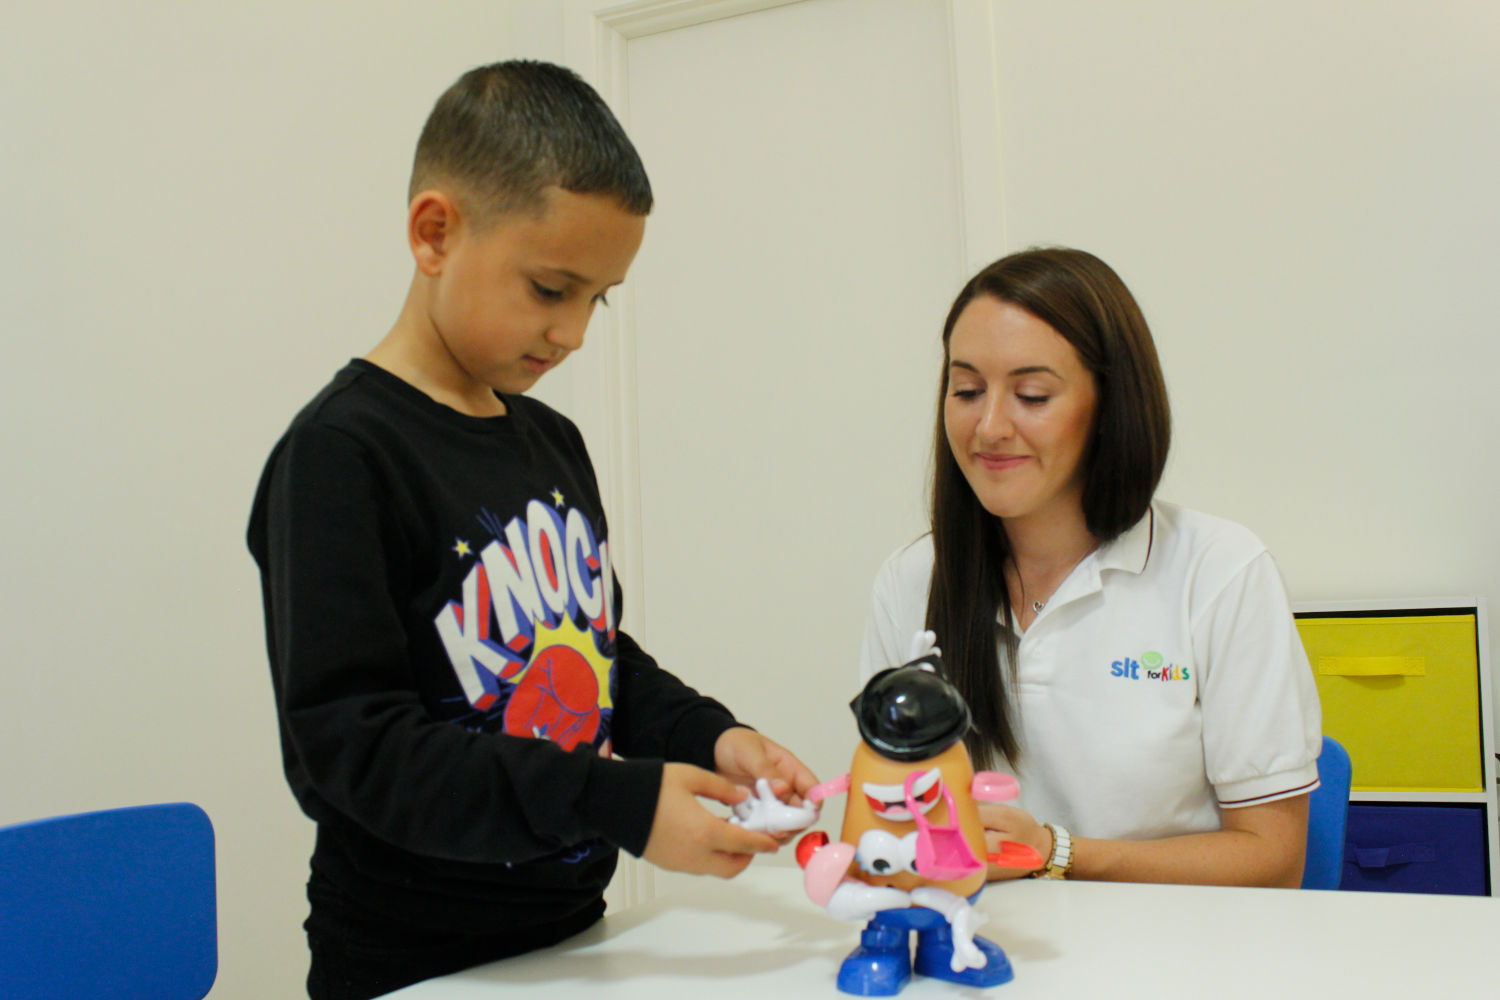 SLT for Kids therapist observing boy play with Mr. Potato Head.